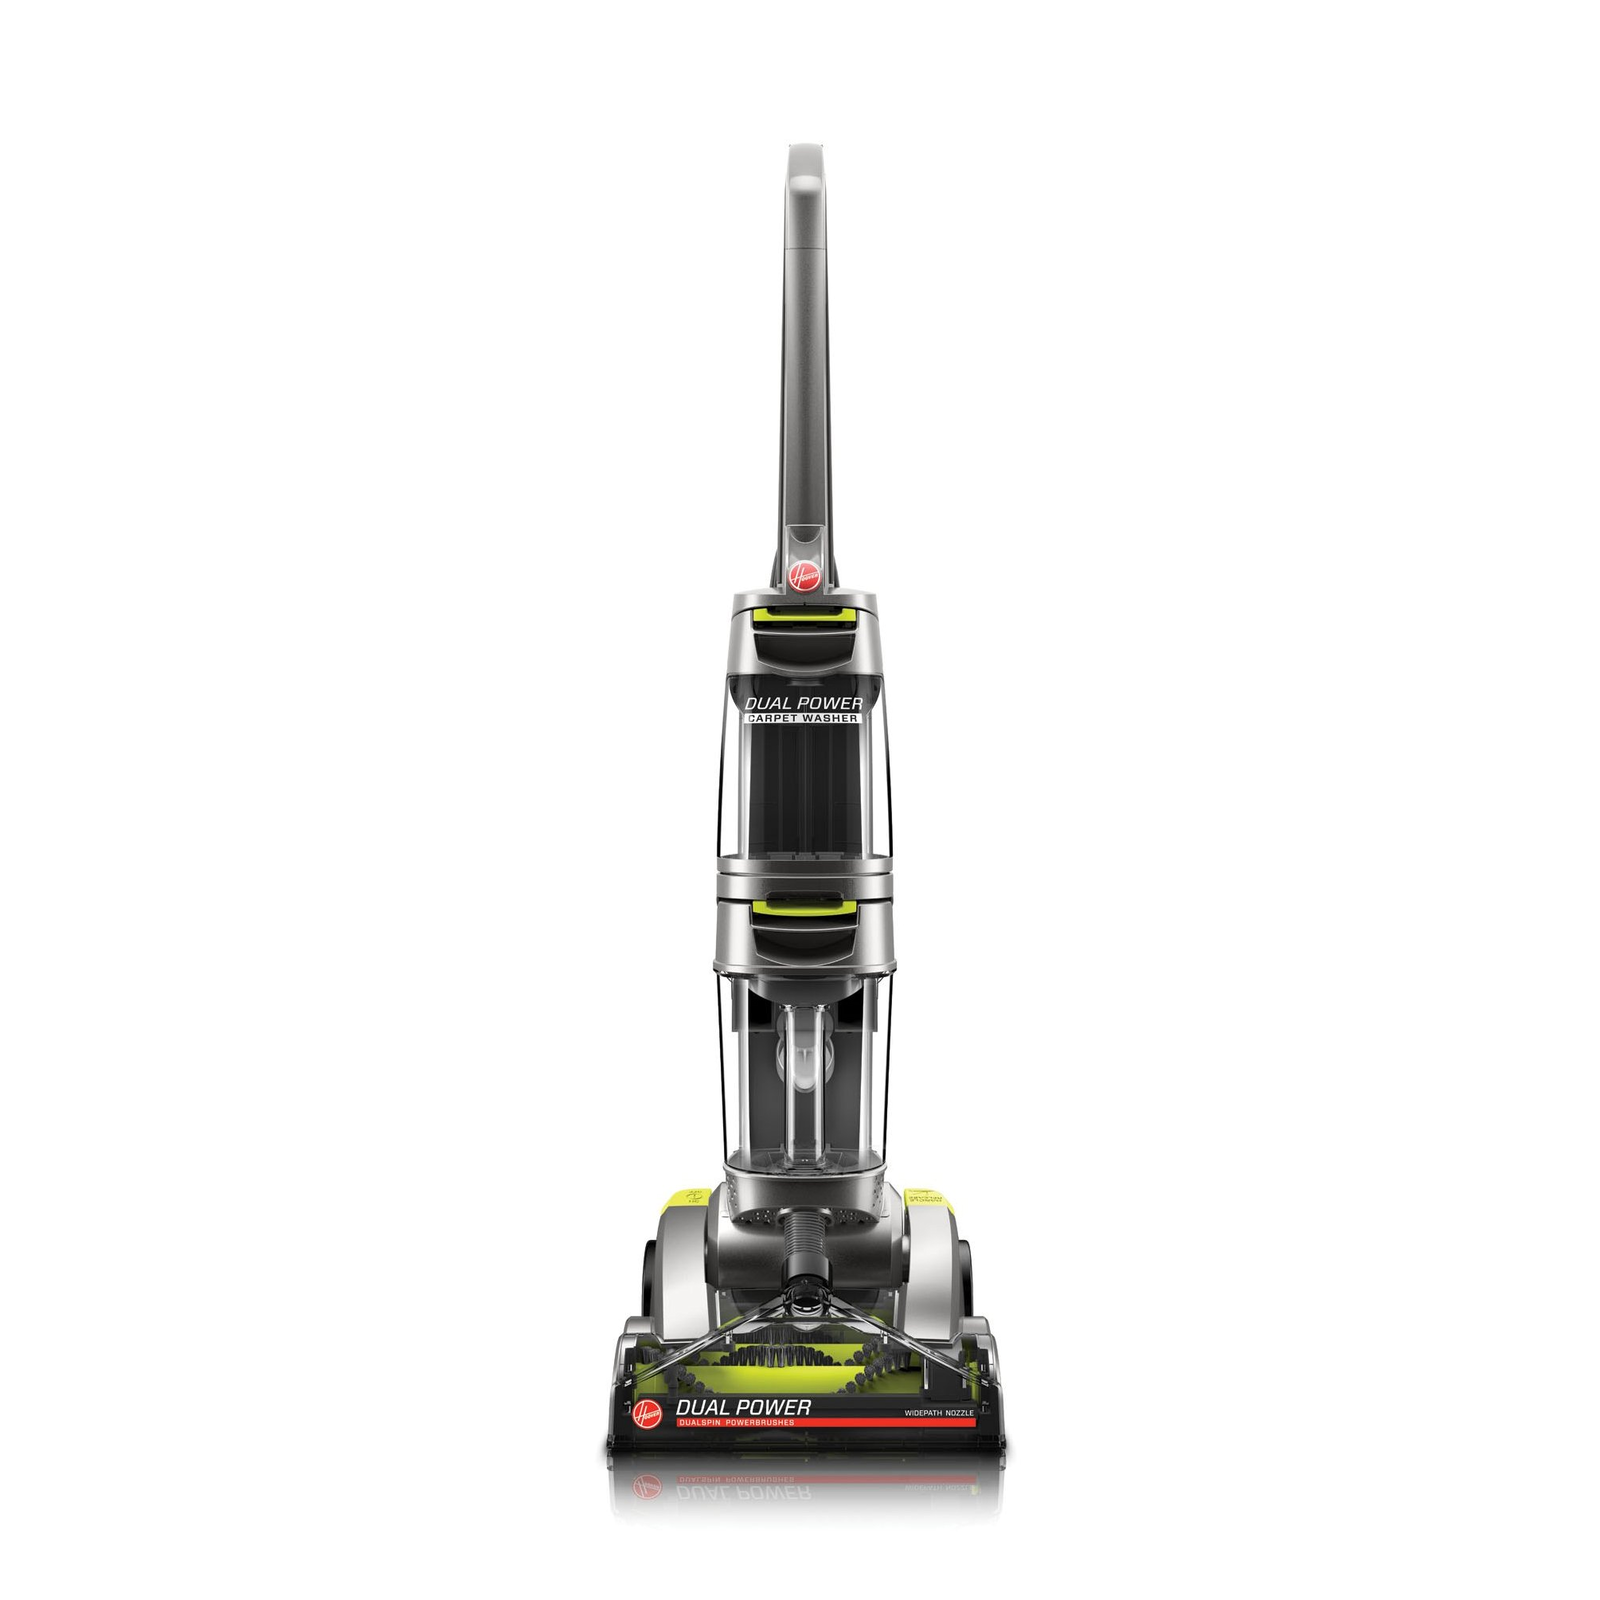 Hoover Dual Power Upright Carpet Cleaner, -FH50900